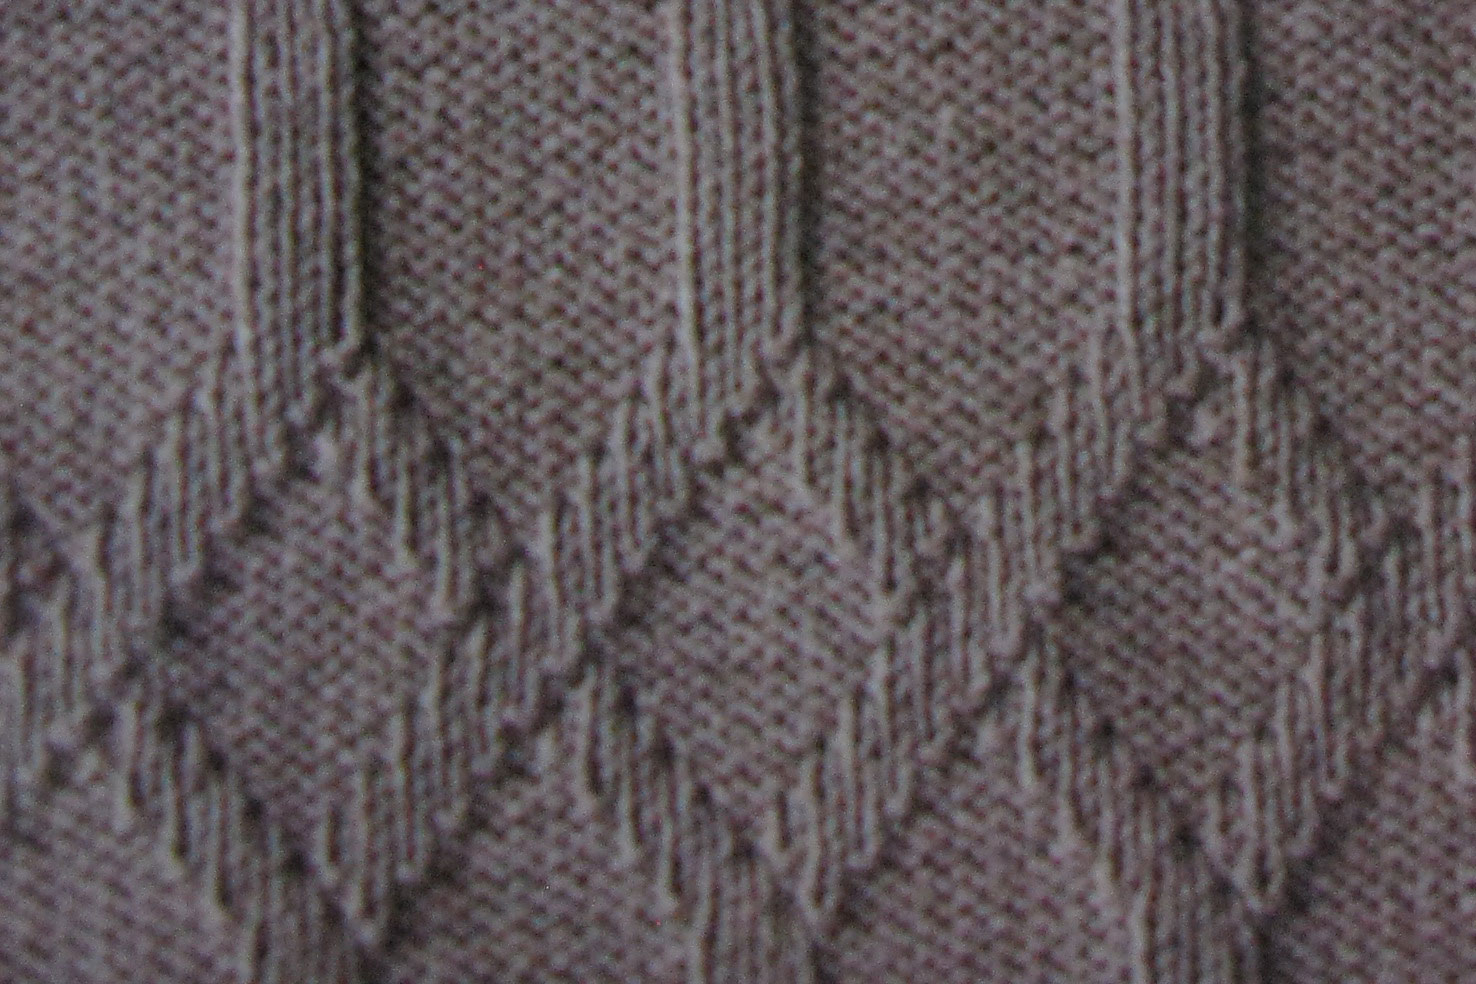 Knitting Stitches Knit And Purl : Interlinked Diamonds Knit and Purl Stitch - Knitting Kingdom